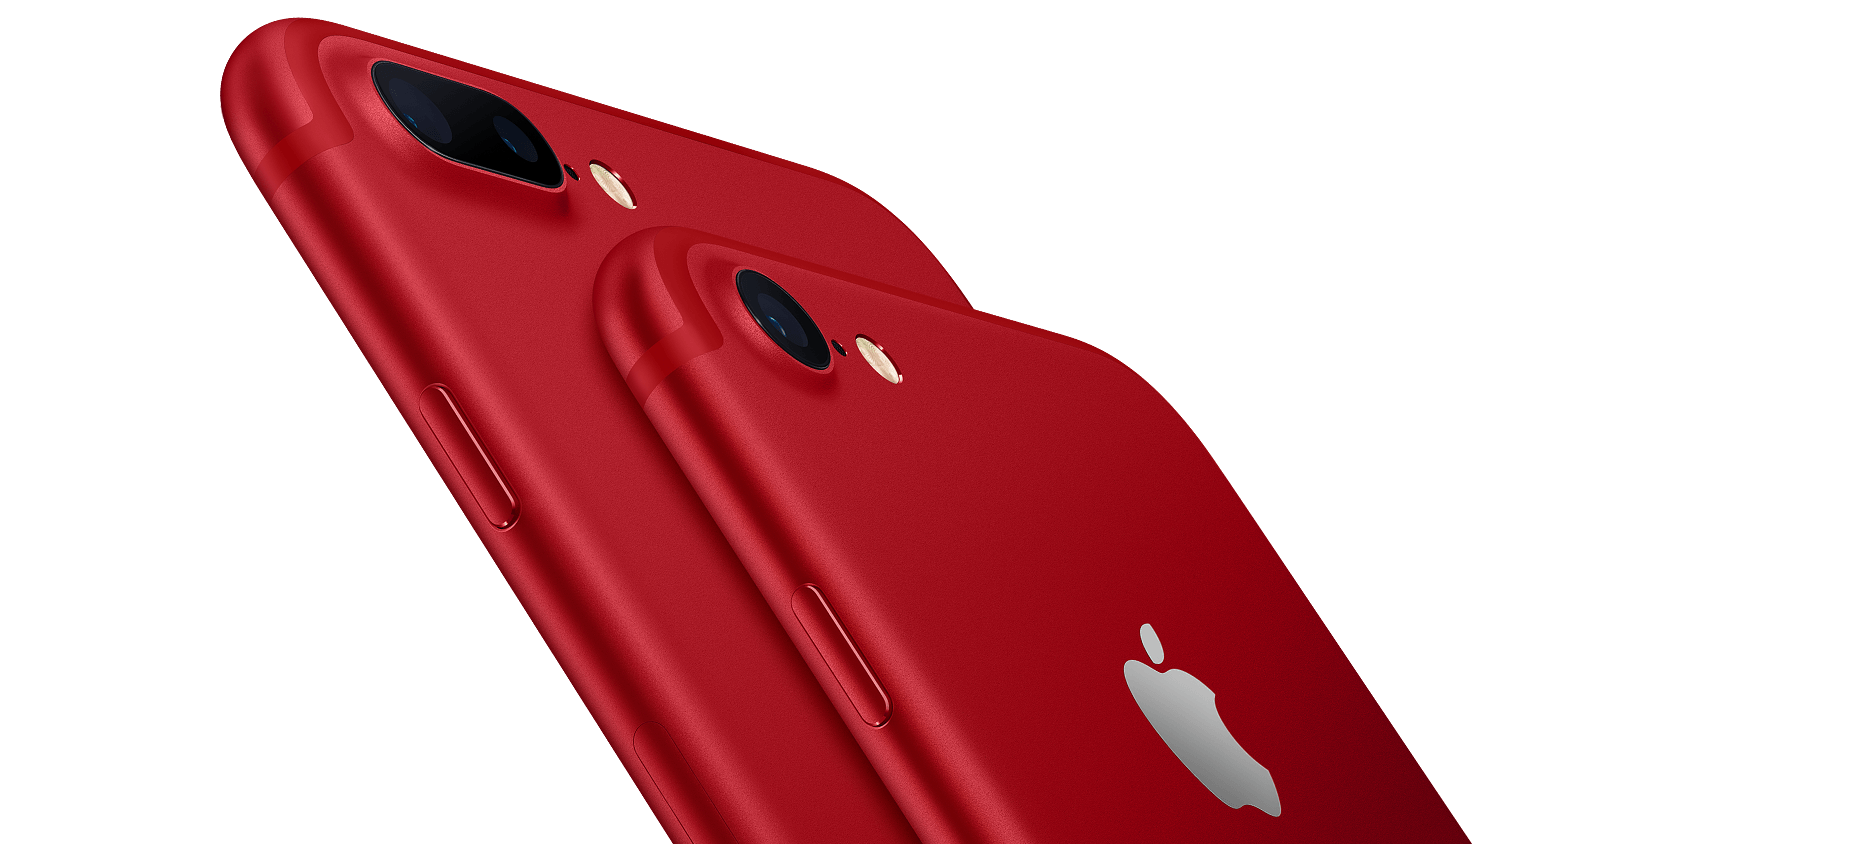 Buy the Apple iPhone 7 on Canada's fastest network | TELUS